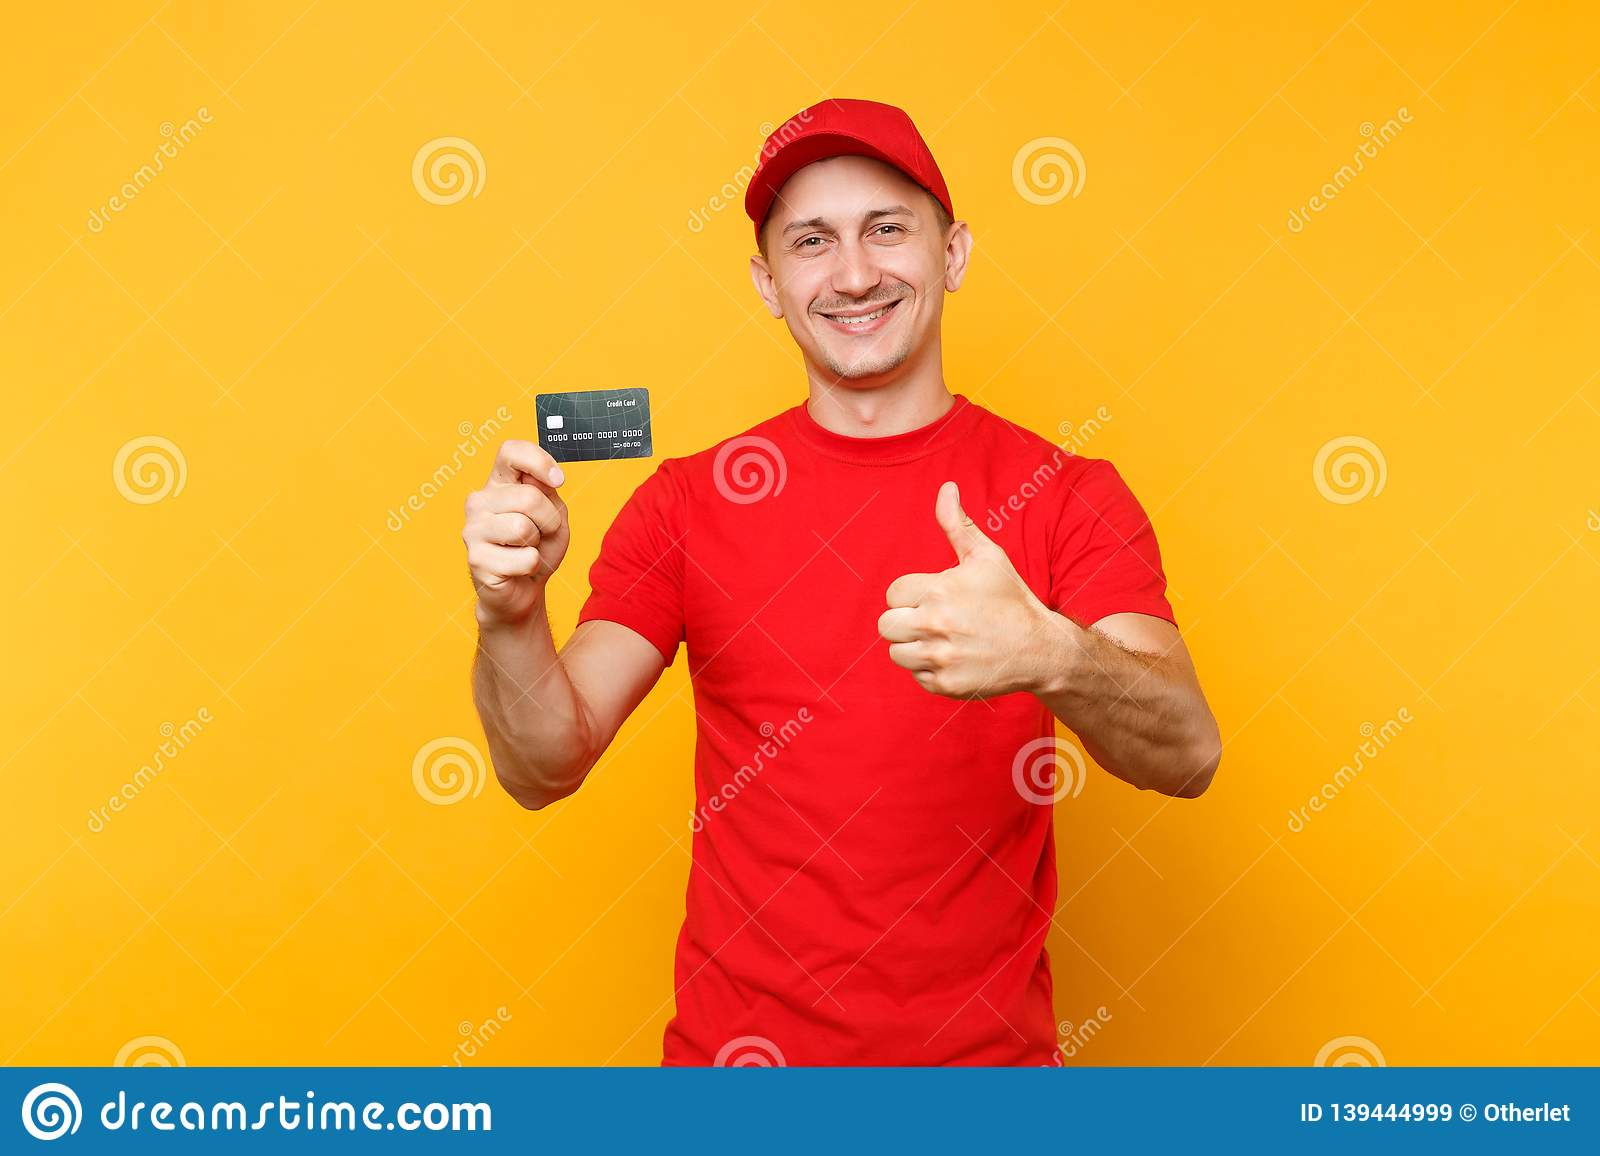 Delivery man in red uniform isolated on yellow orange background. Smiling male employee in cap, empty t-shirt courier